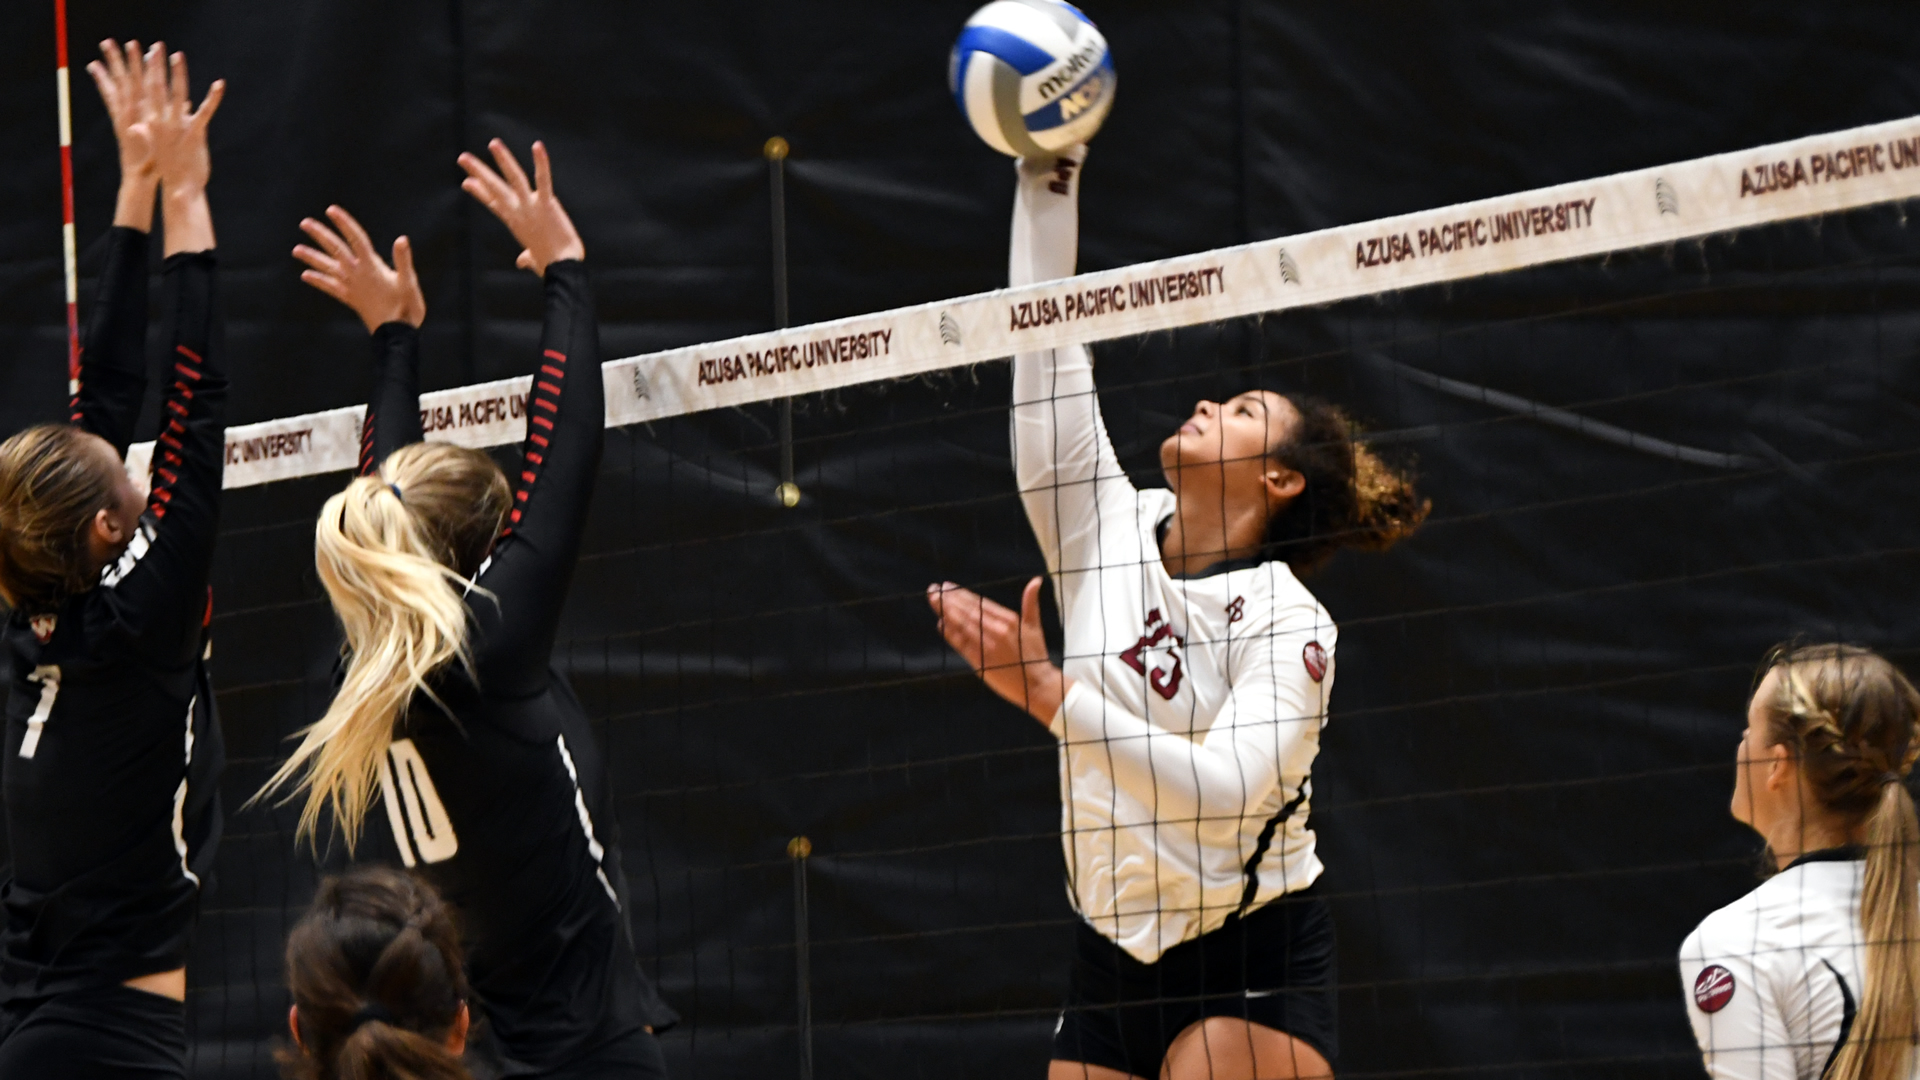 Cougars 7th In First Volleyball Regional Rankings Azusa Pacific University Athletics